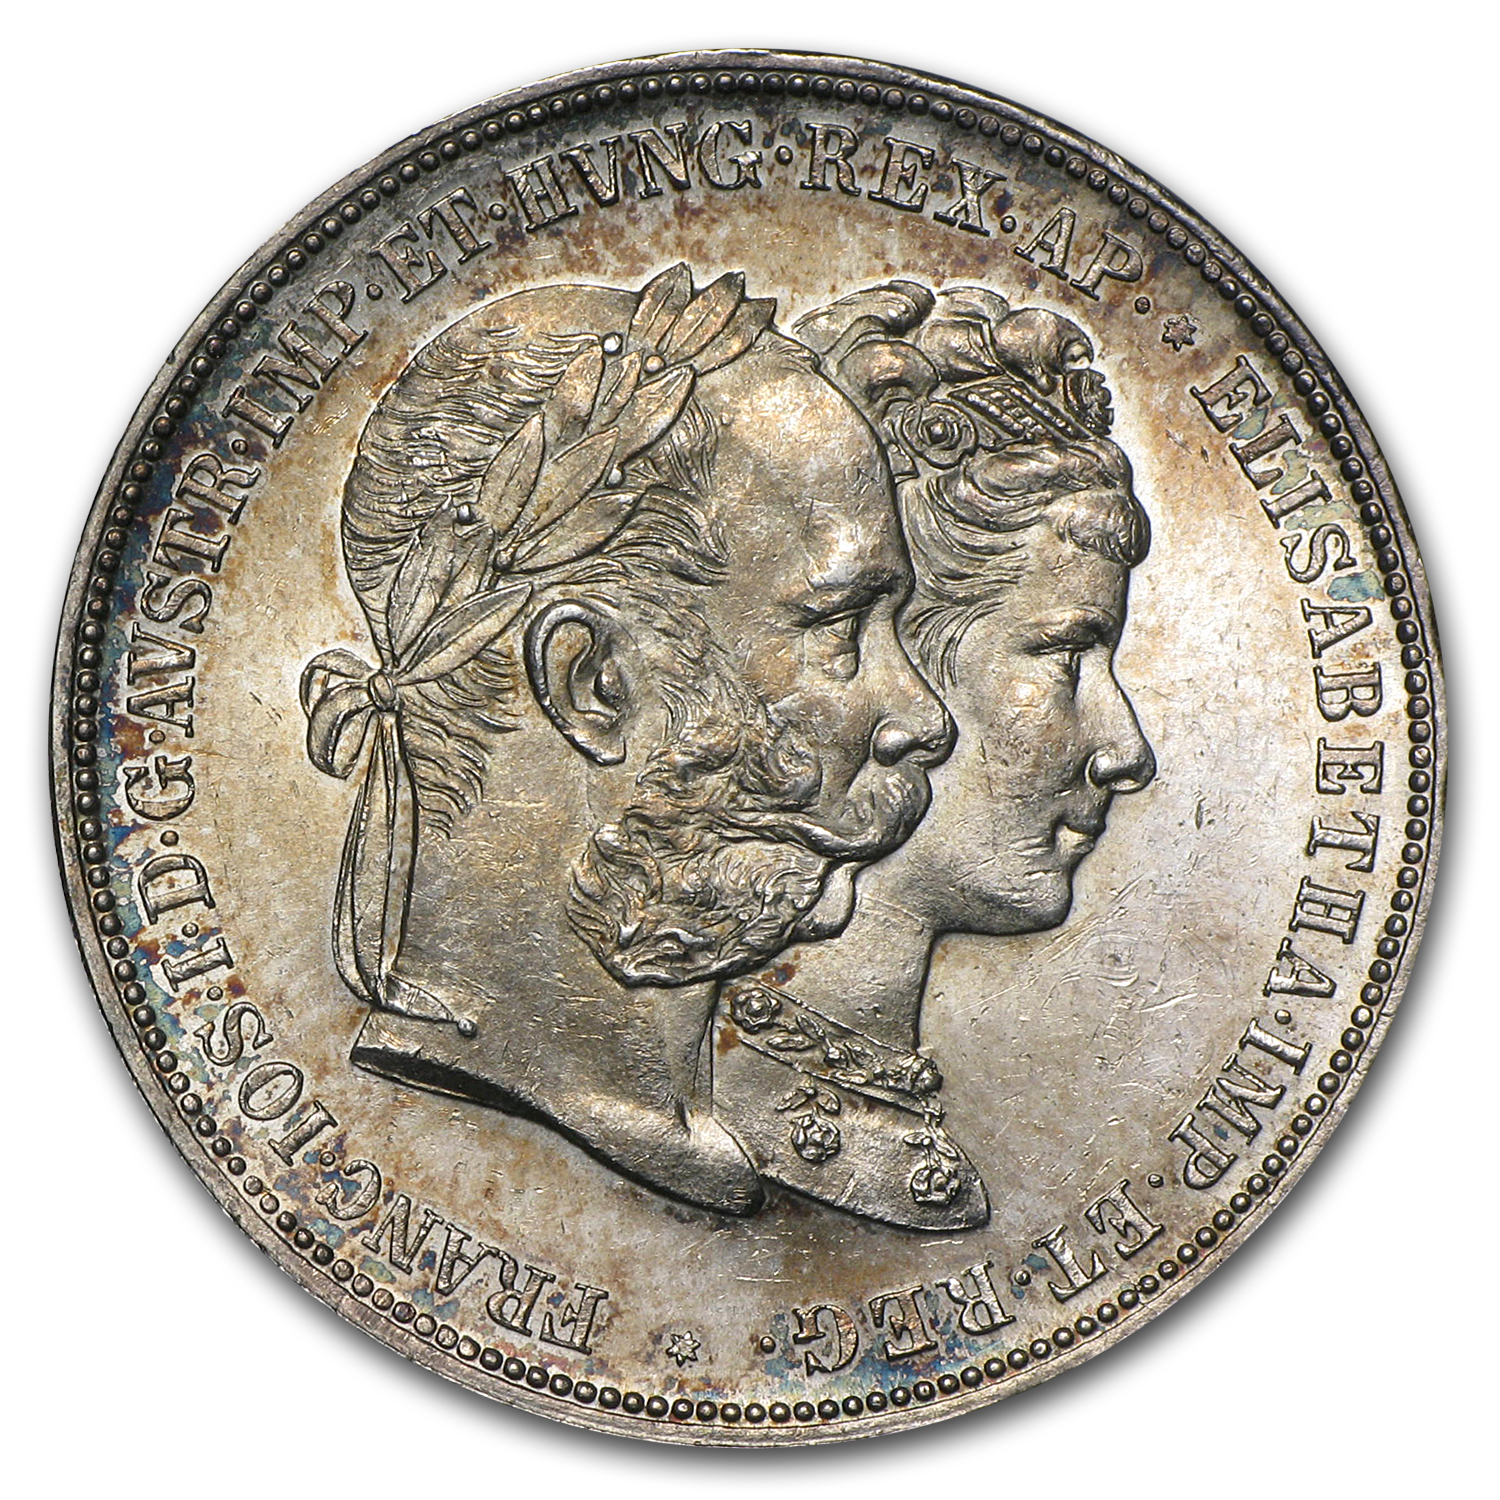 Austria 1879 Silver 2 Gulden Wedding Anniv. BU